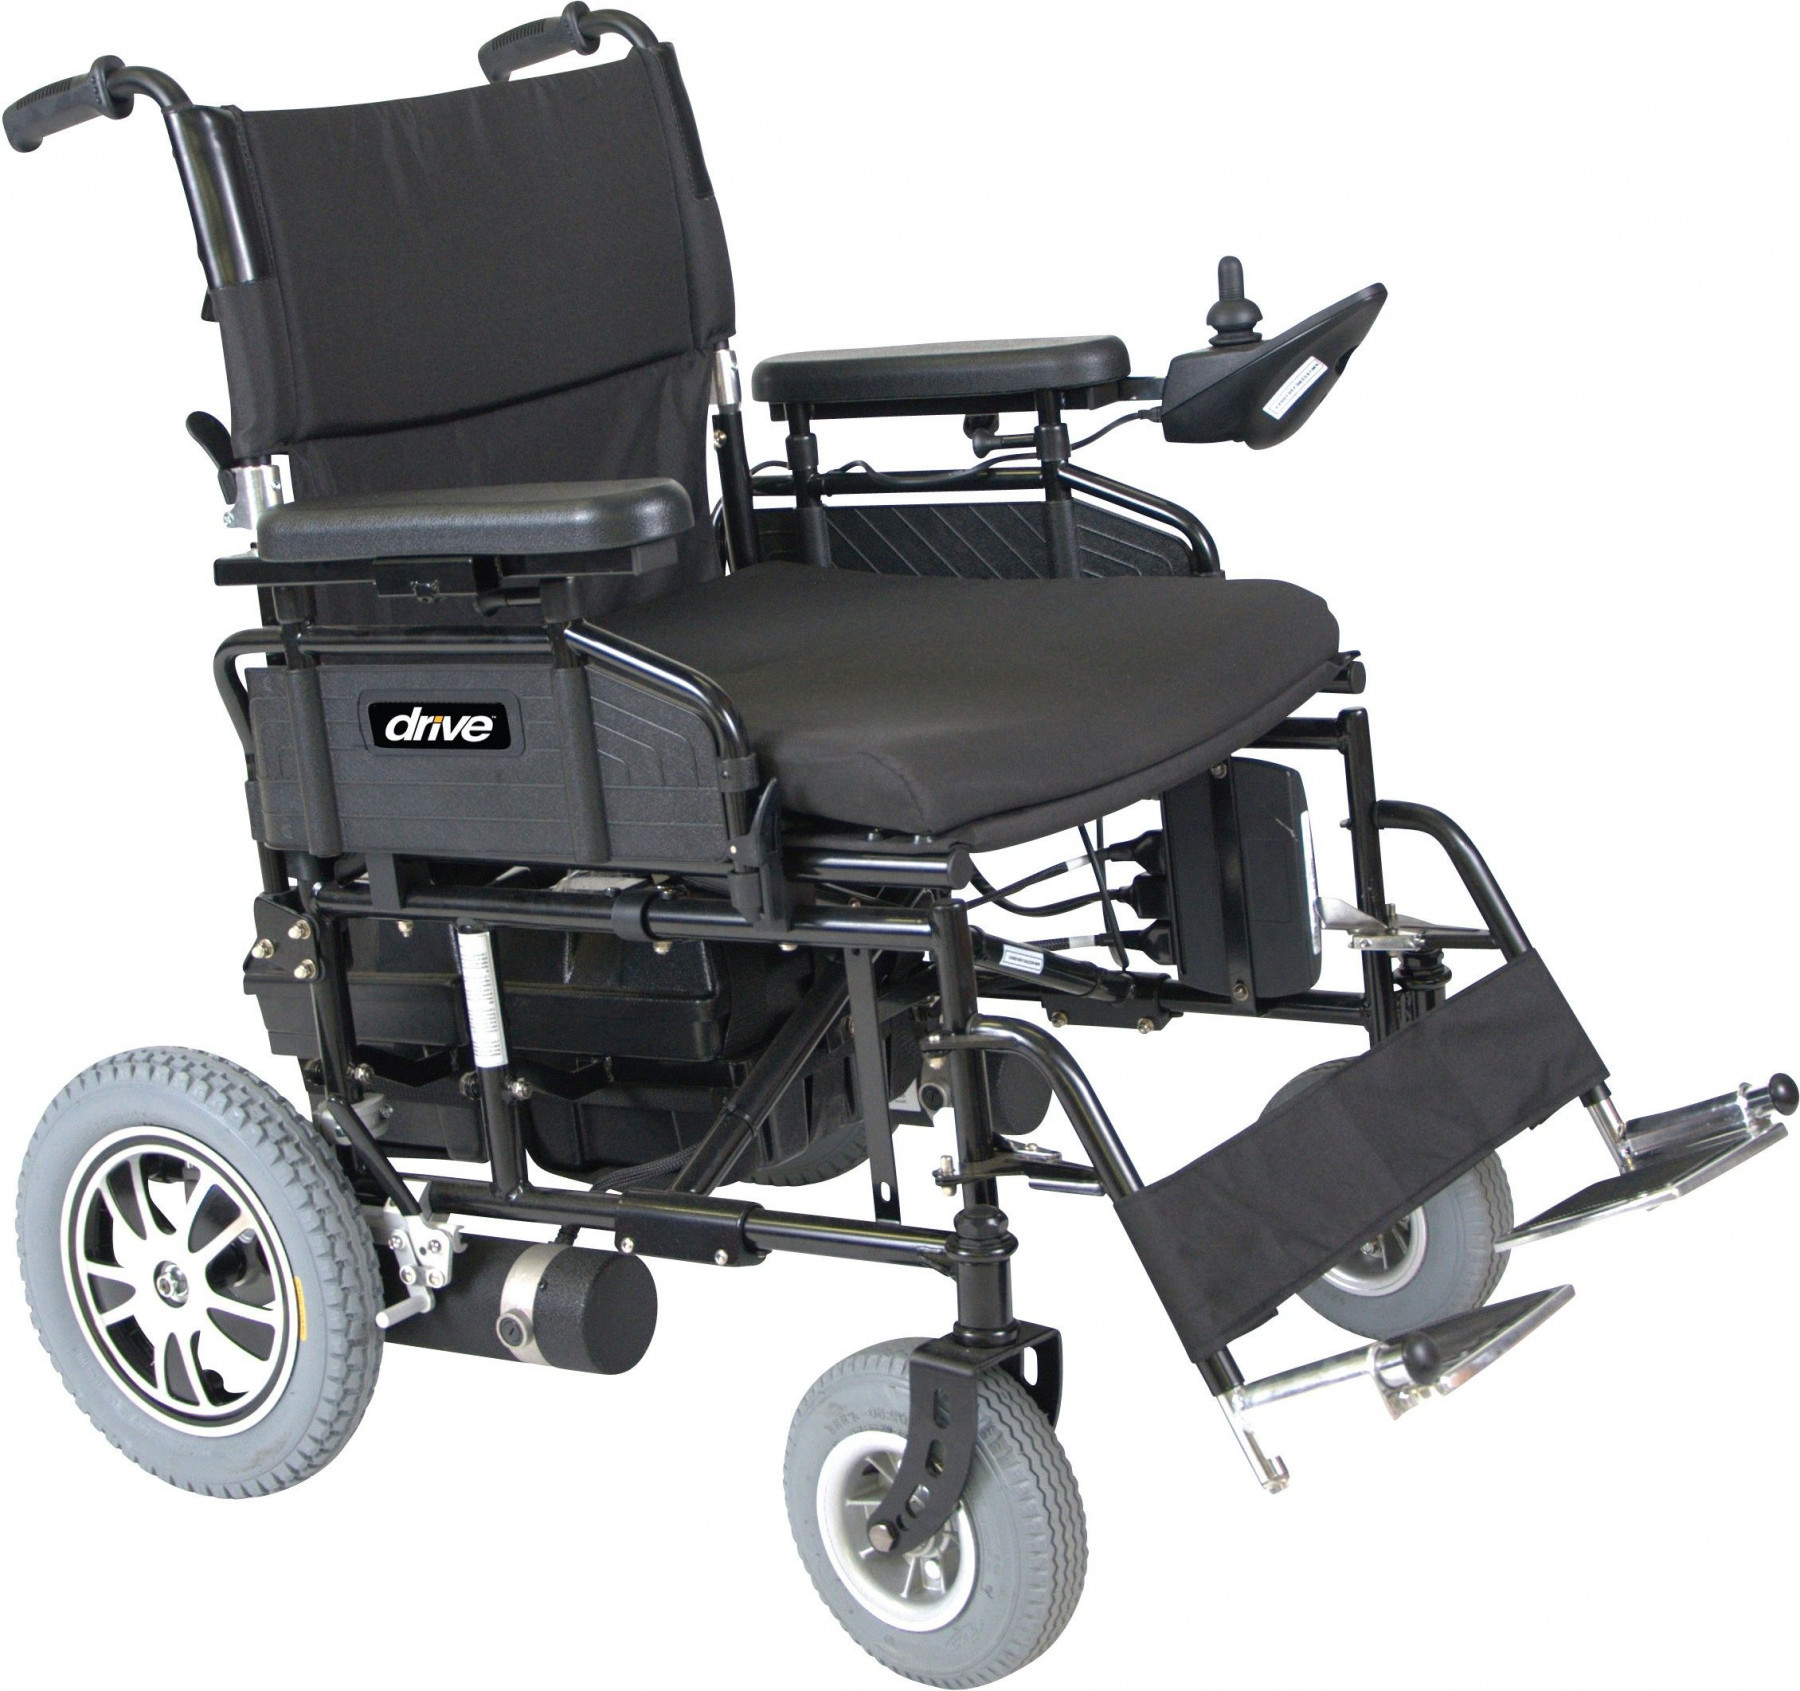 Wildcat 450 Power Wheelchair for Sale at the Lowest Pricing